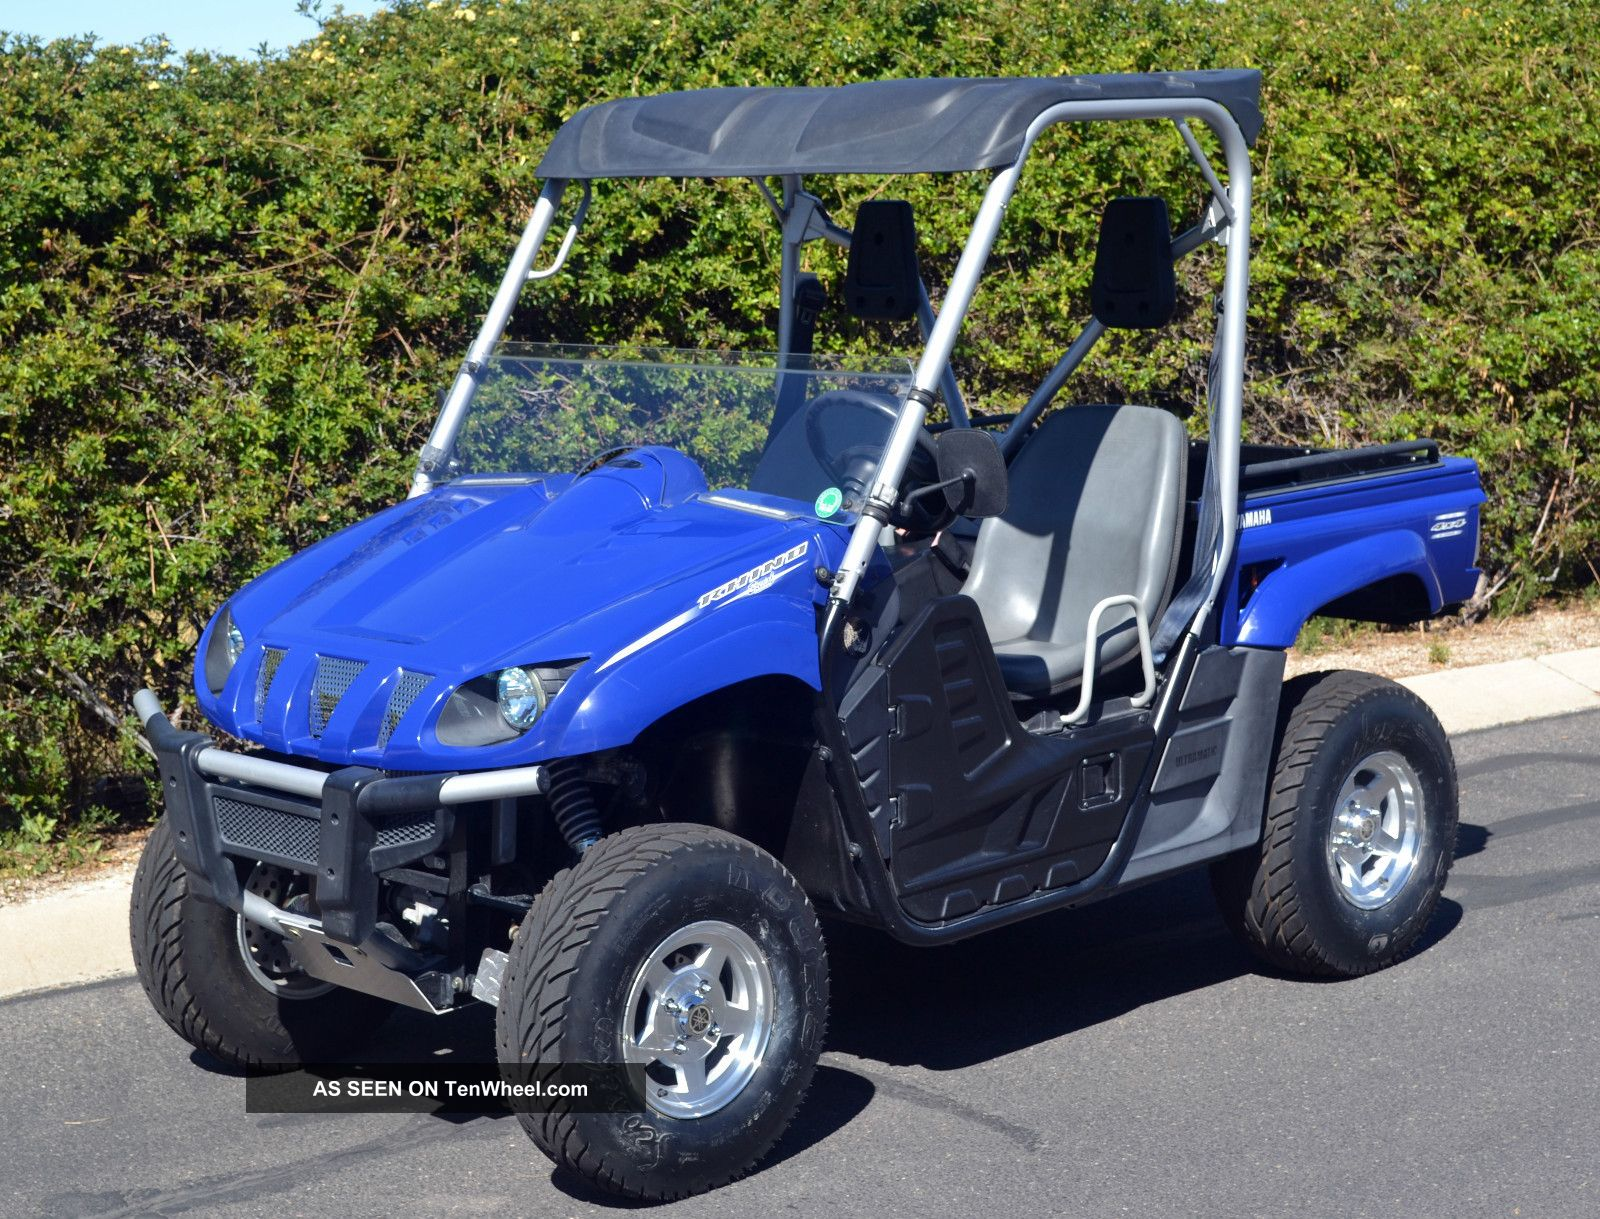 2006 660 rhino specs autos post for 2006 yamaha grizzly 660 value